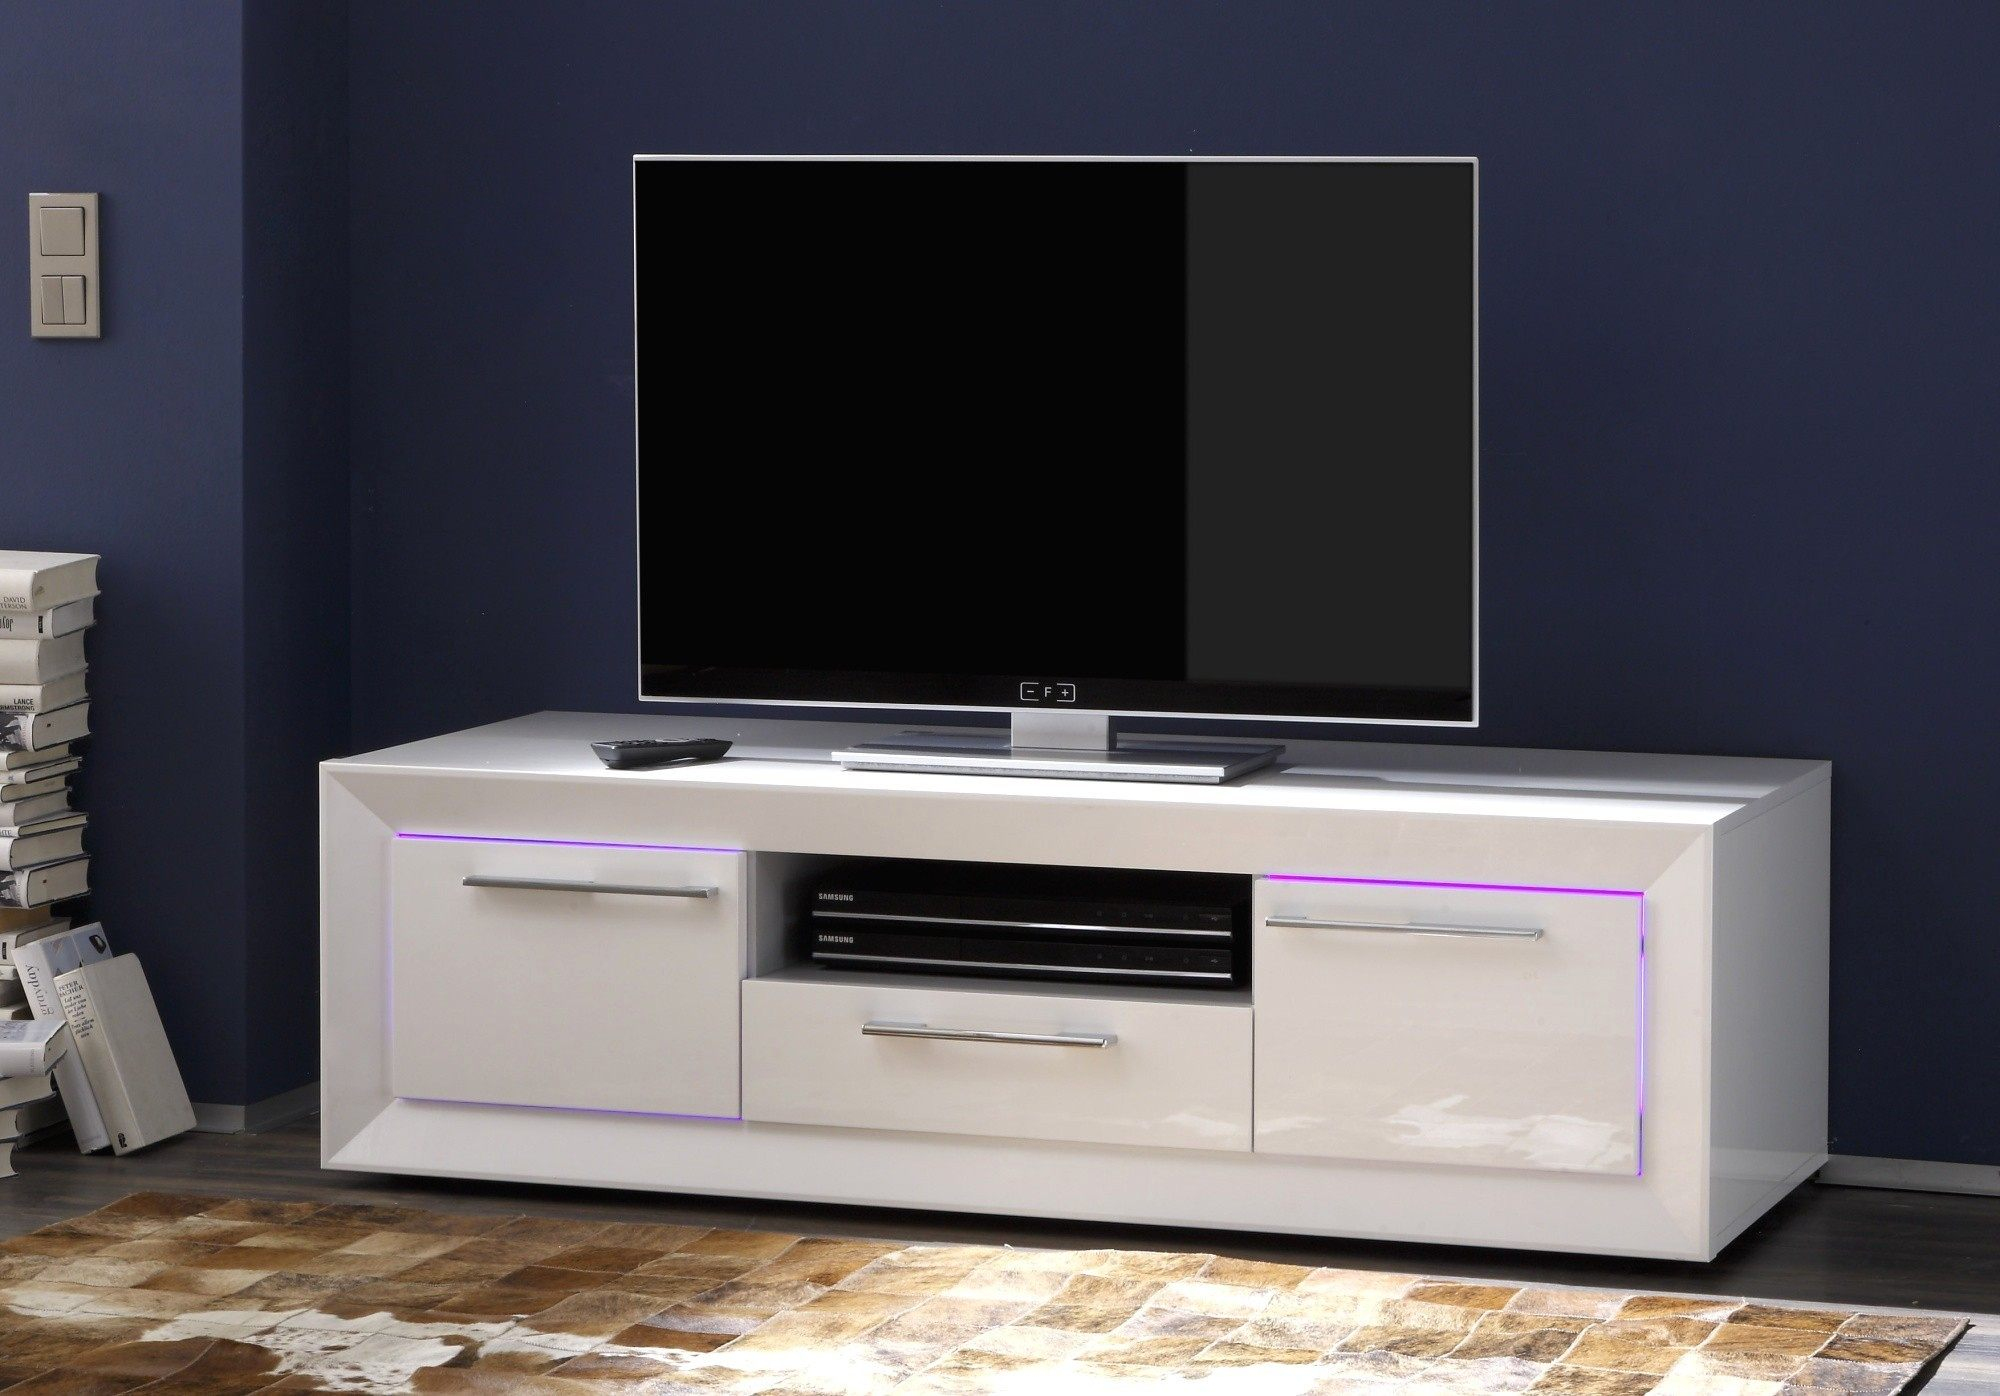 Canape Angle Fly Luxe Collection Meuble Tv D Angle Fly Belle Canape Fly D Angle Convertible] 100